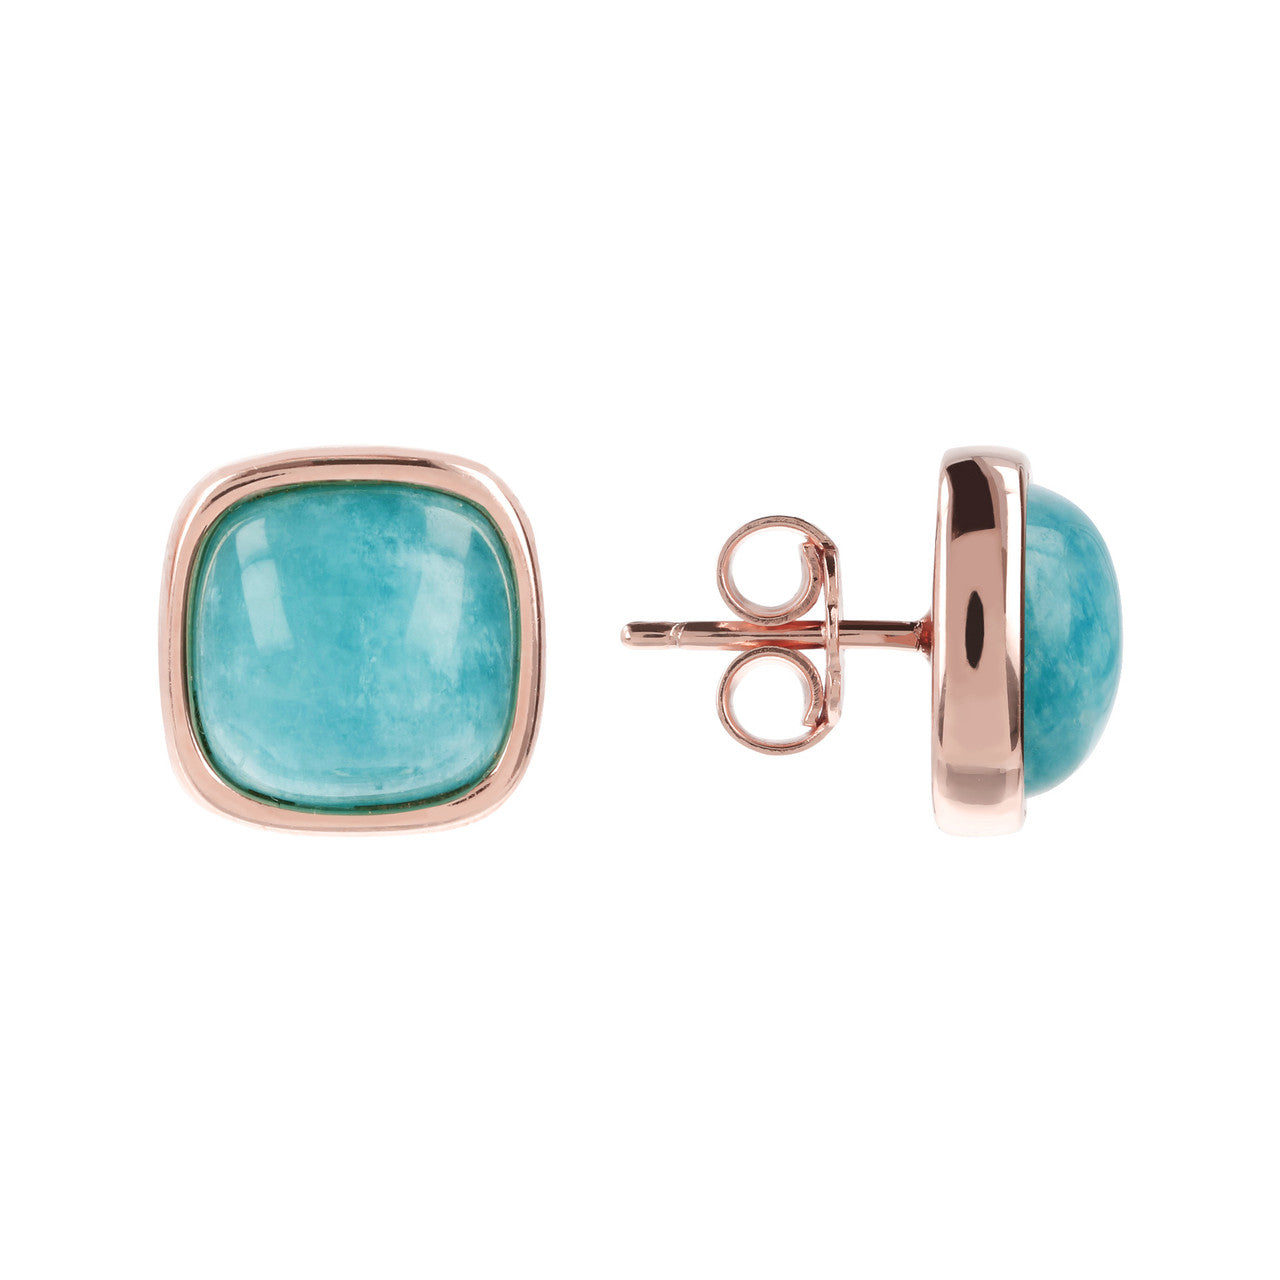 Square Bezel Set Button Earrings